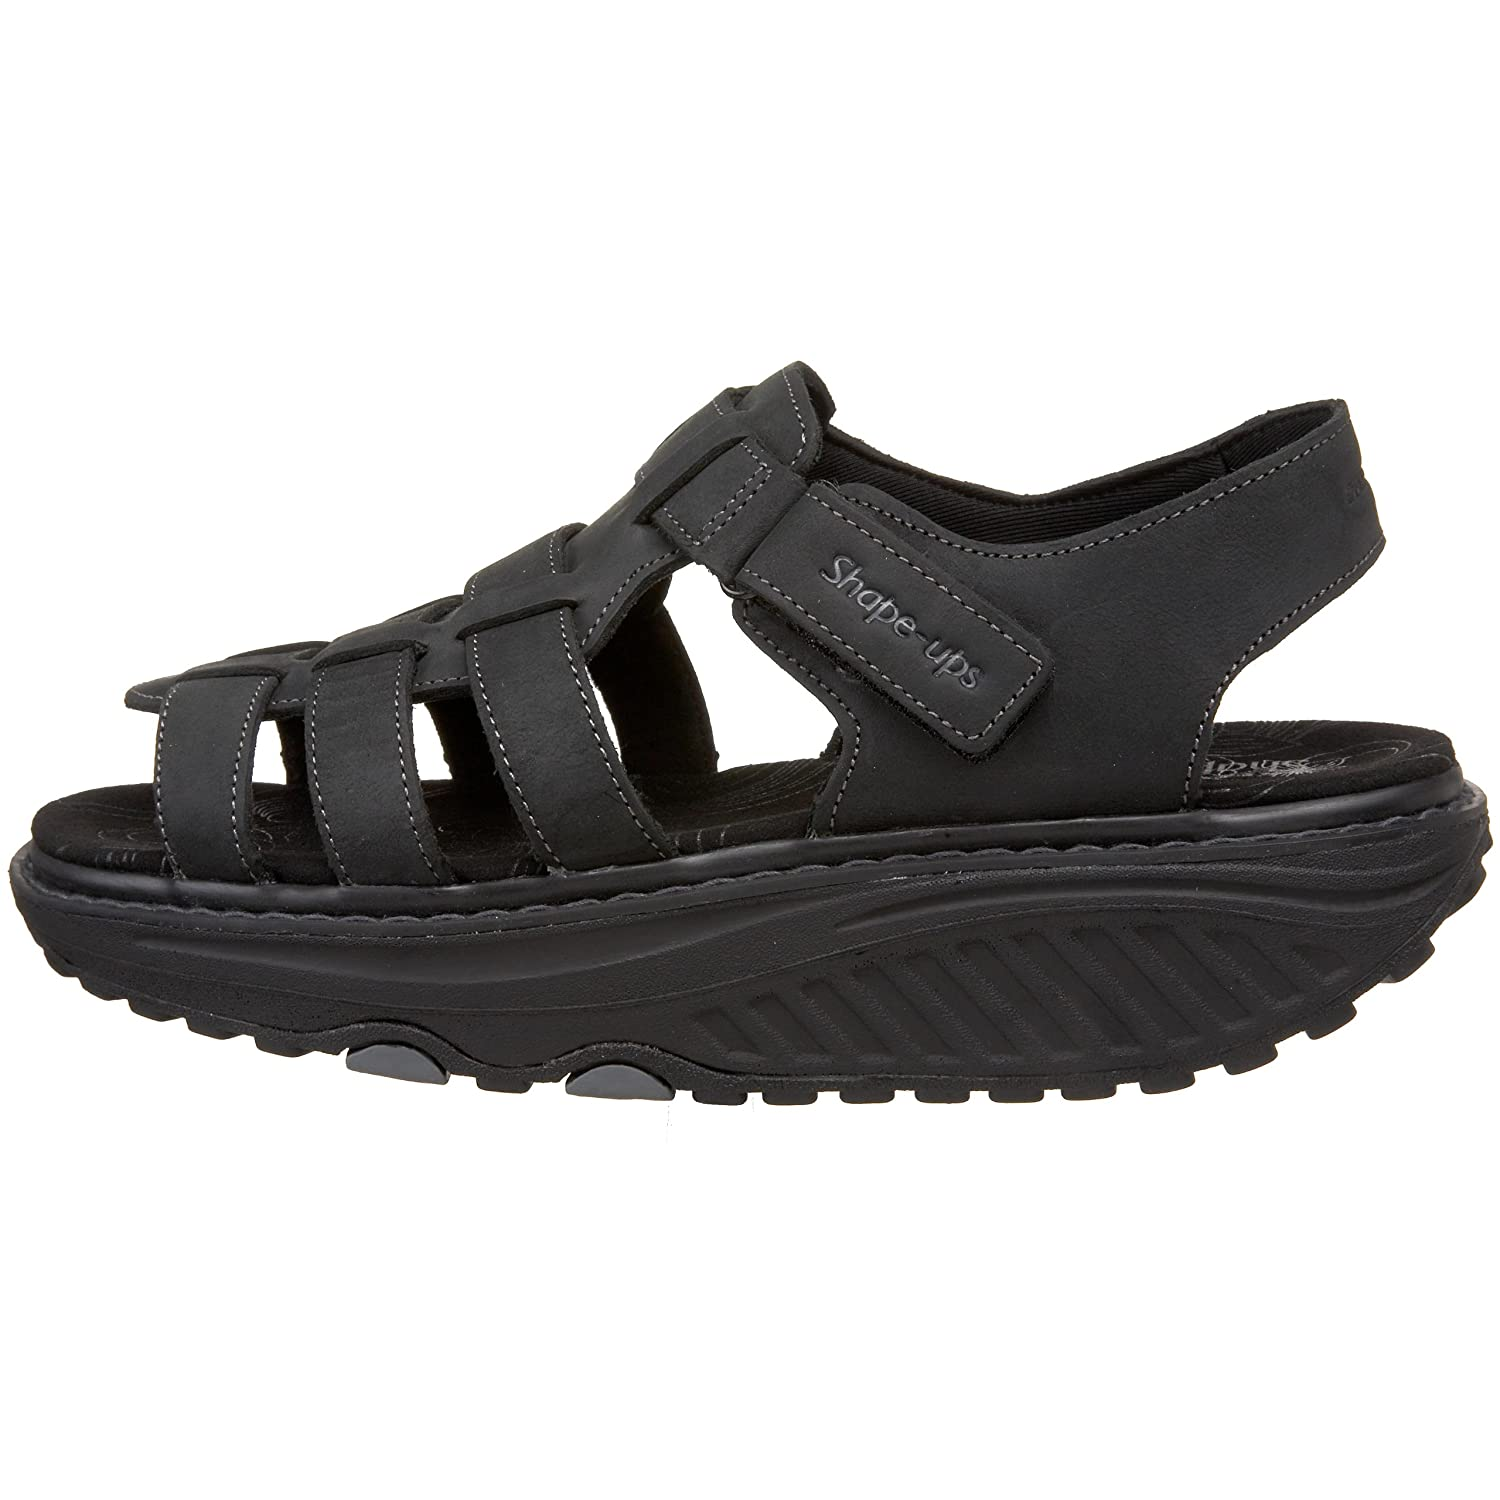 Skechers Shape Up Sandalias Amazon yEVO2fT